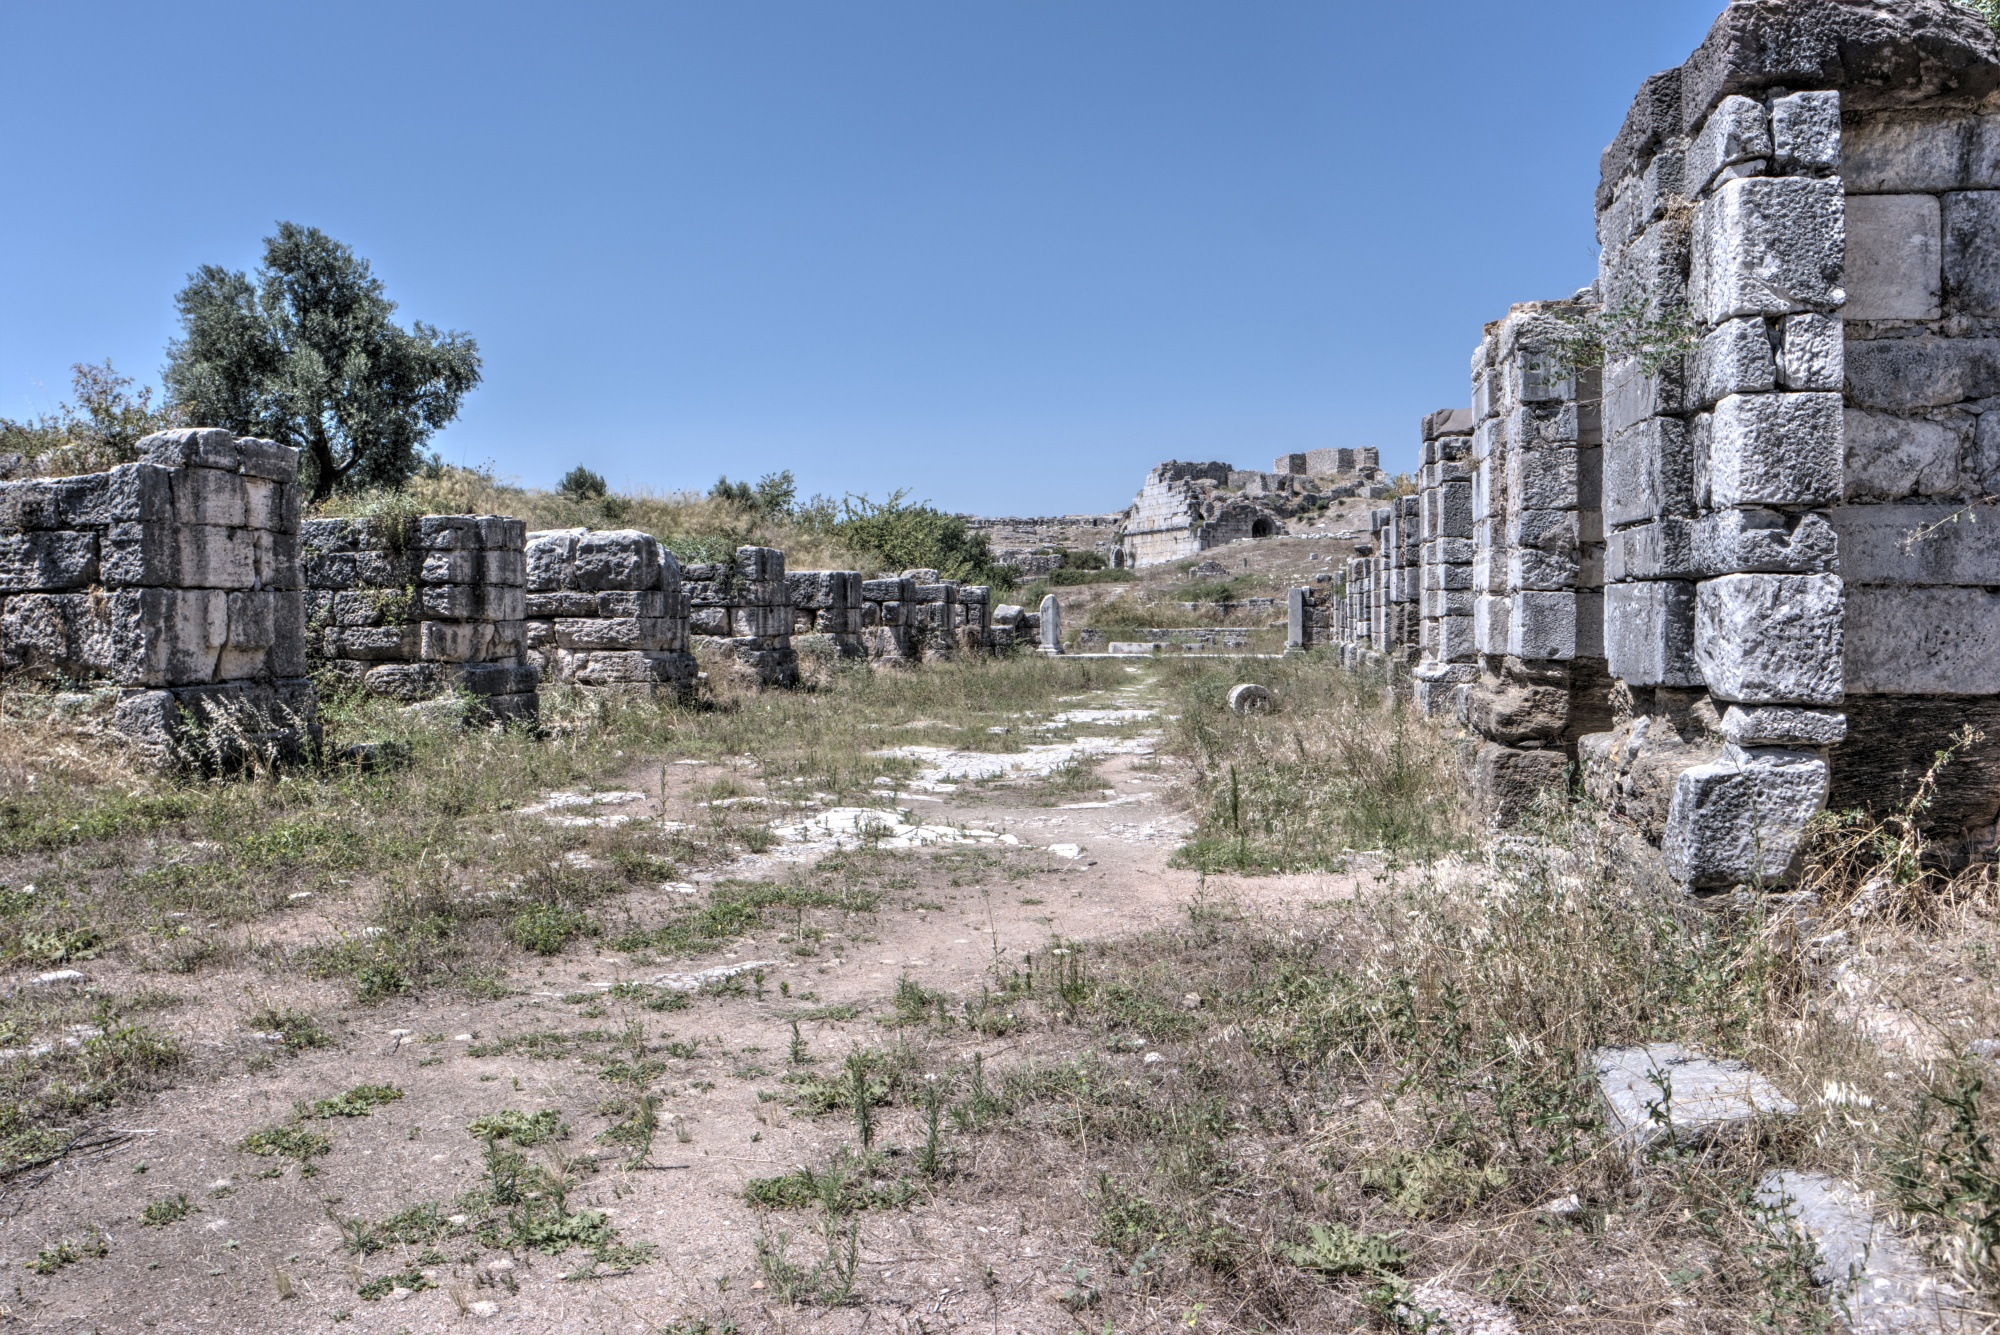 Palaestra of the Baths of Faustina in Miletus